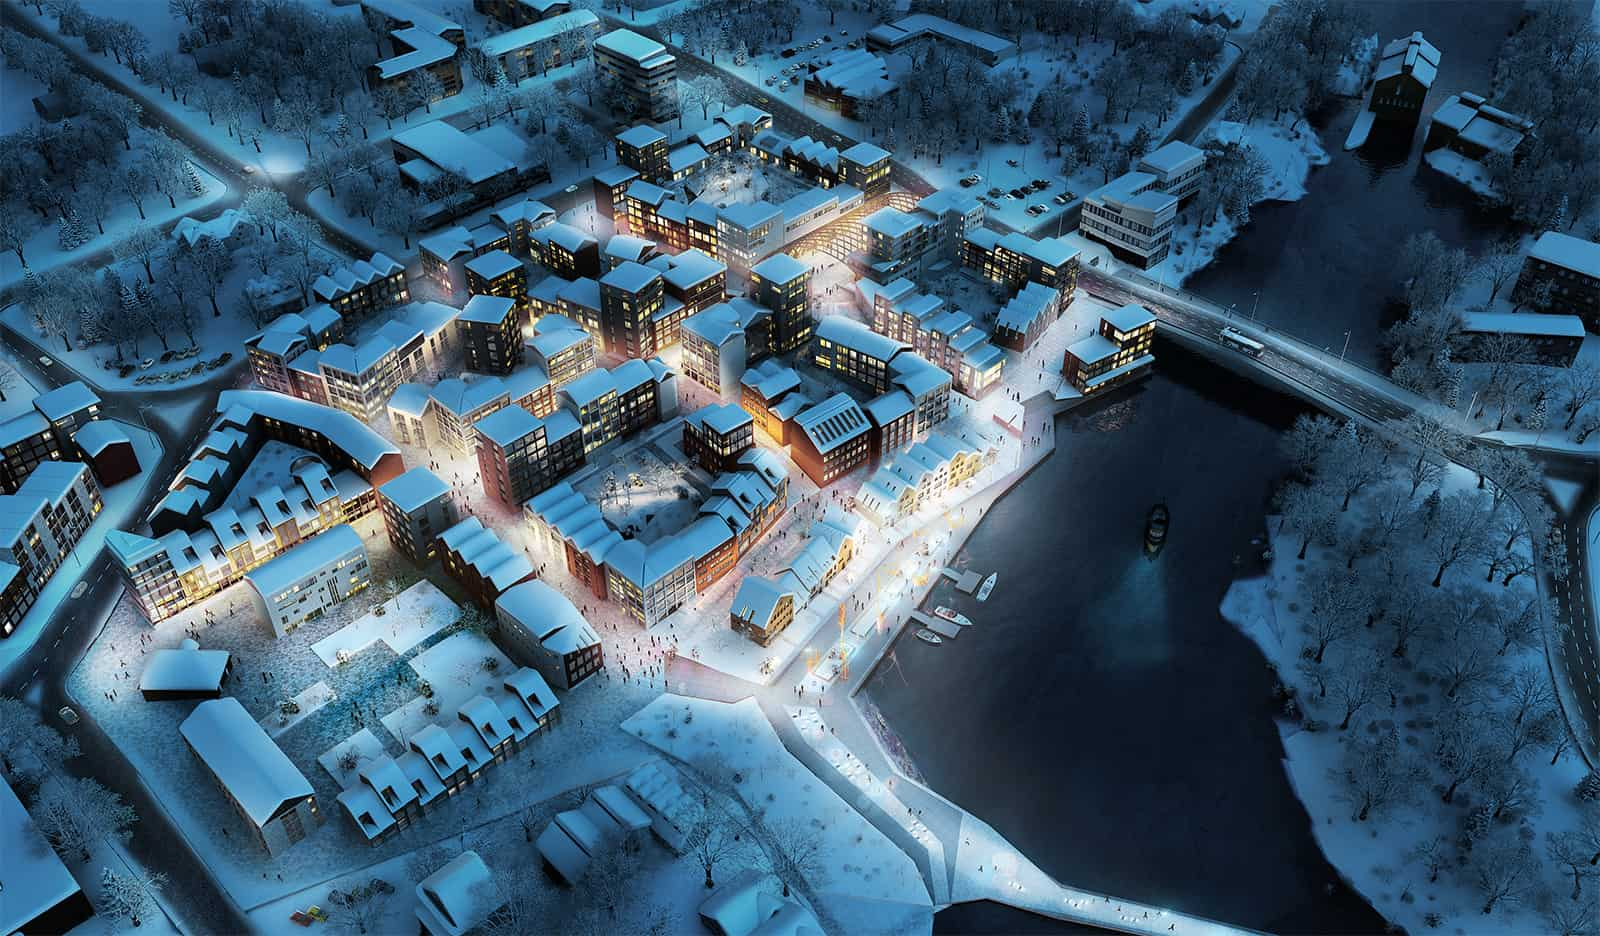 Finland • Housing • Mixed use • Bird Eye • Winter